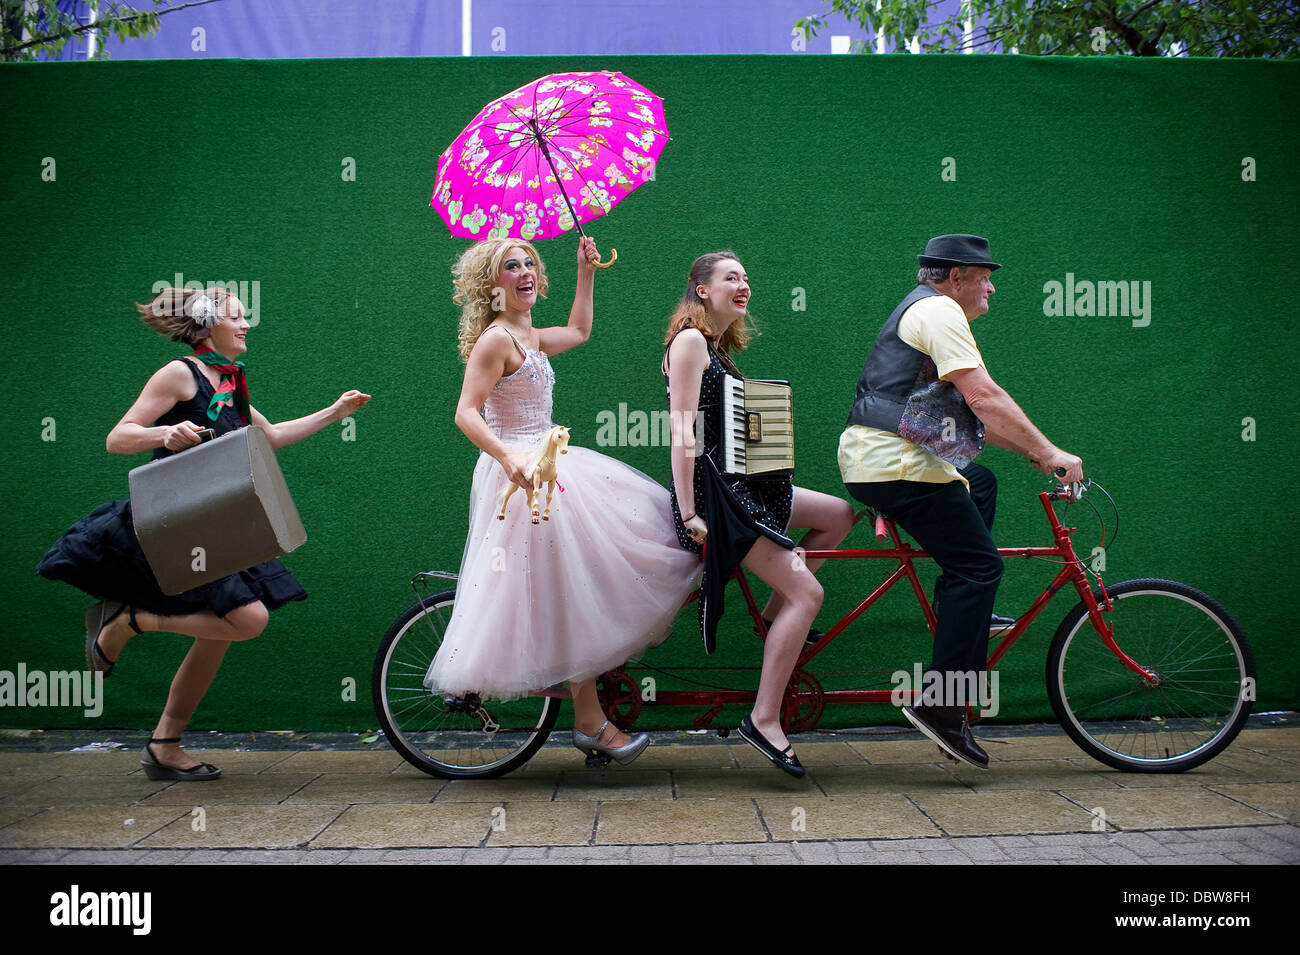 Edinburgh. UK. 5th August 2013. The cast of the circus group who perform Flown at Edinburgh's Underbelly as - Stock Image